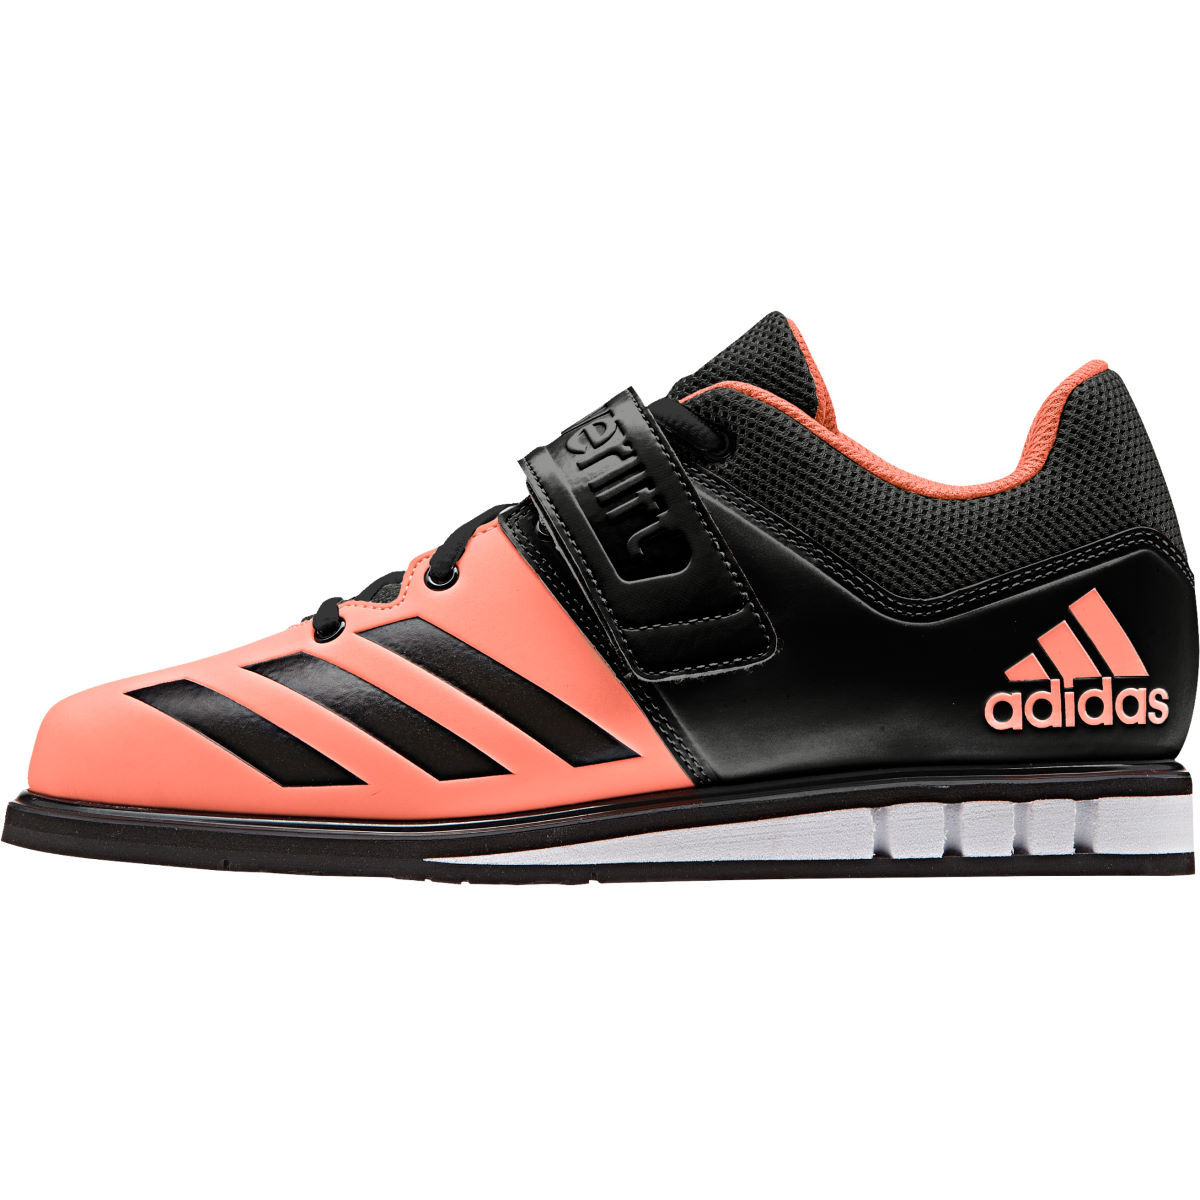 Adidas Womens Powerlift 3 Shoes (AW16)   Training Running Shoes